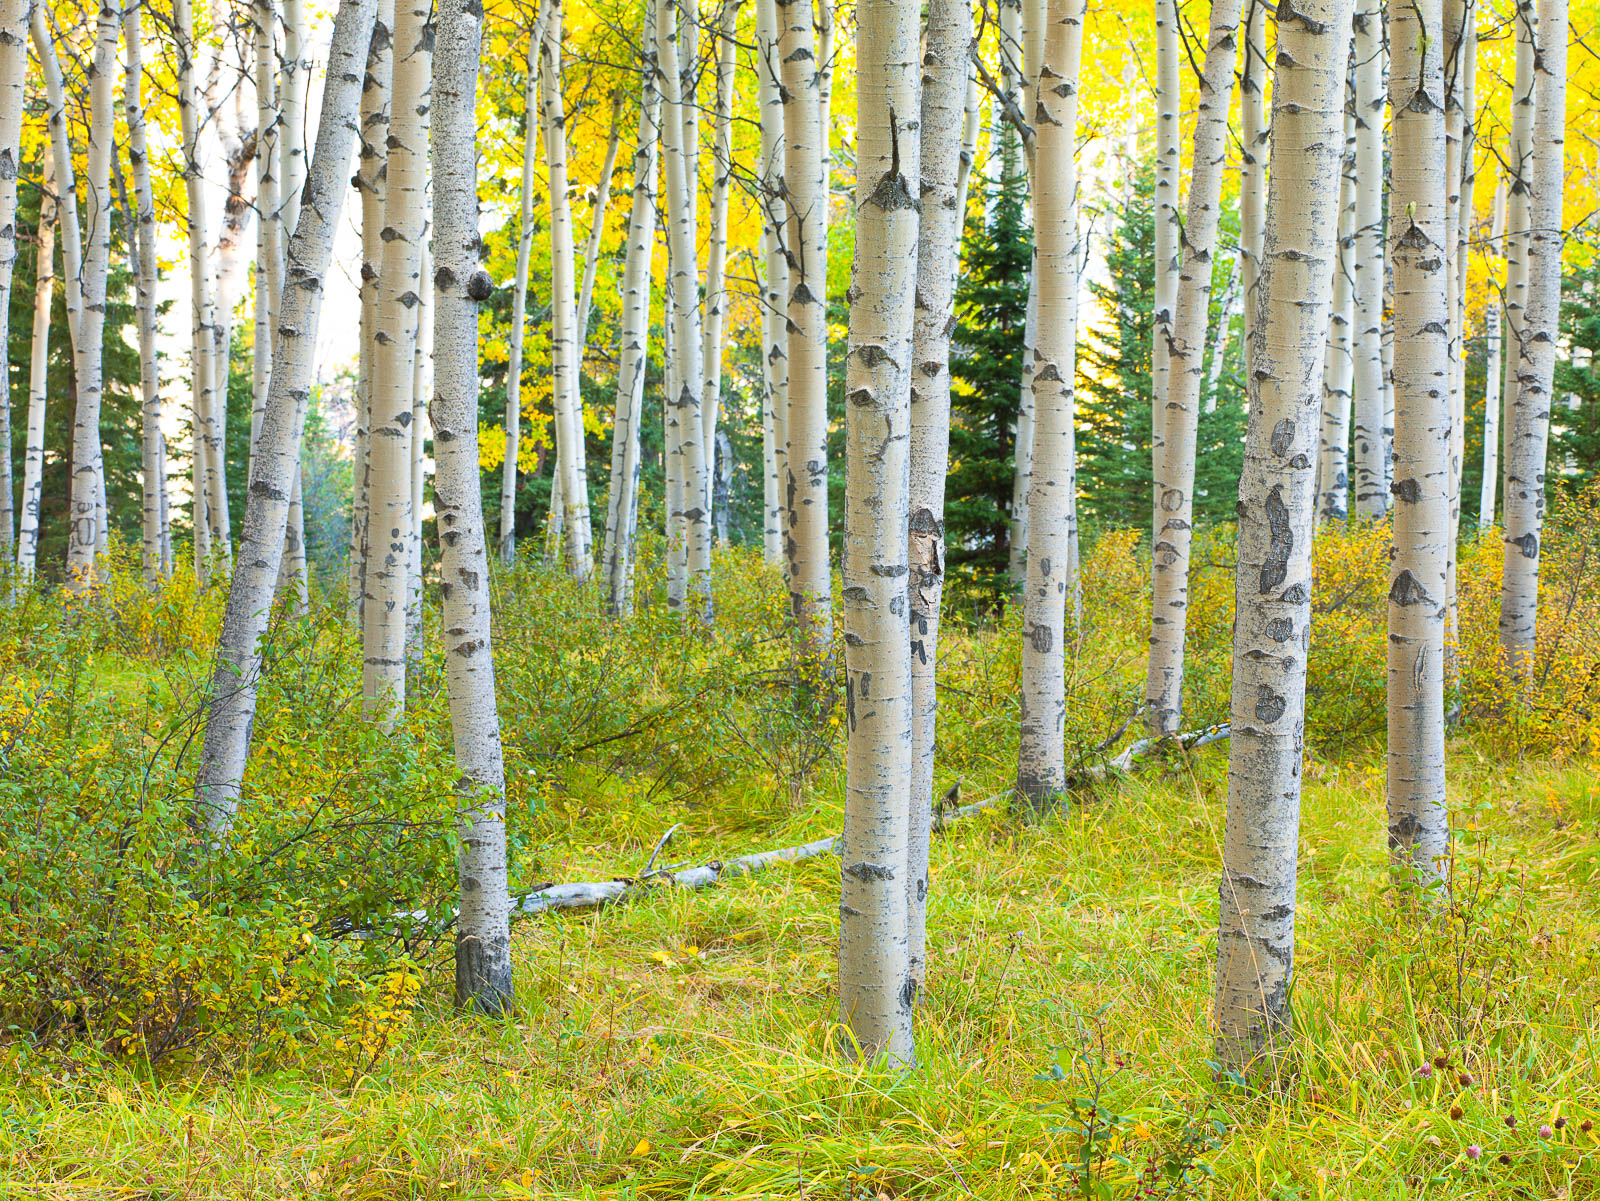 Pining Alone,Autumn,Jasper NP,aspens,folliage,forest,yellow, photo